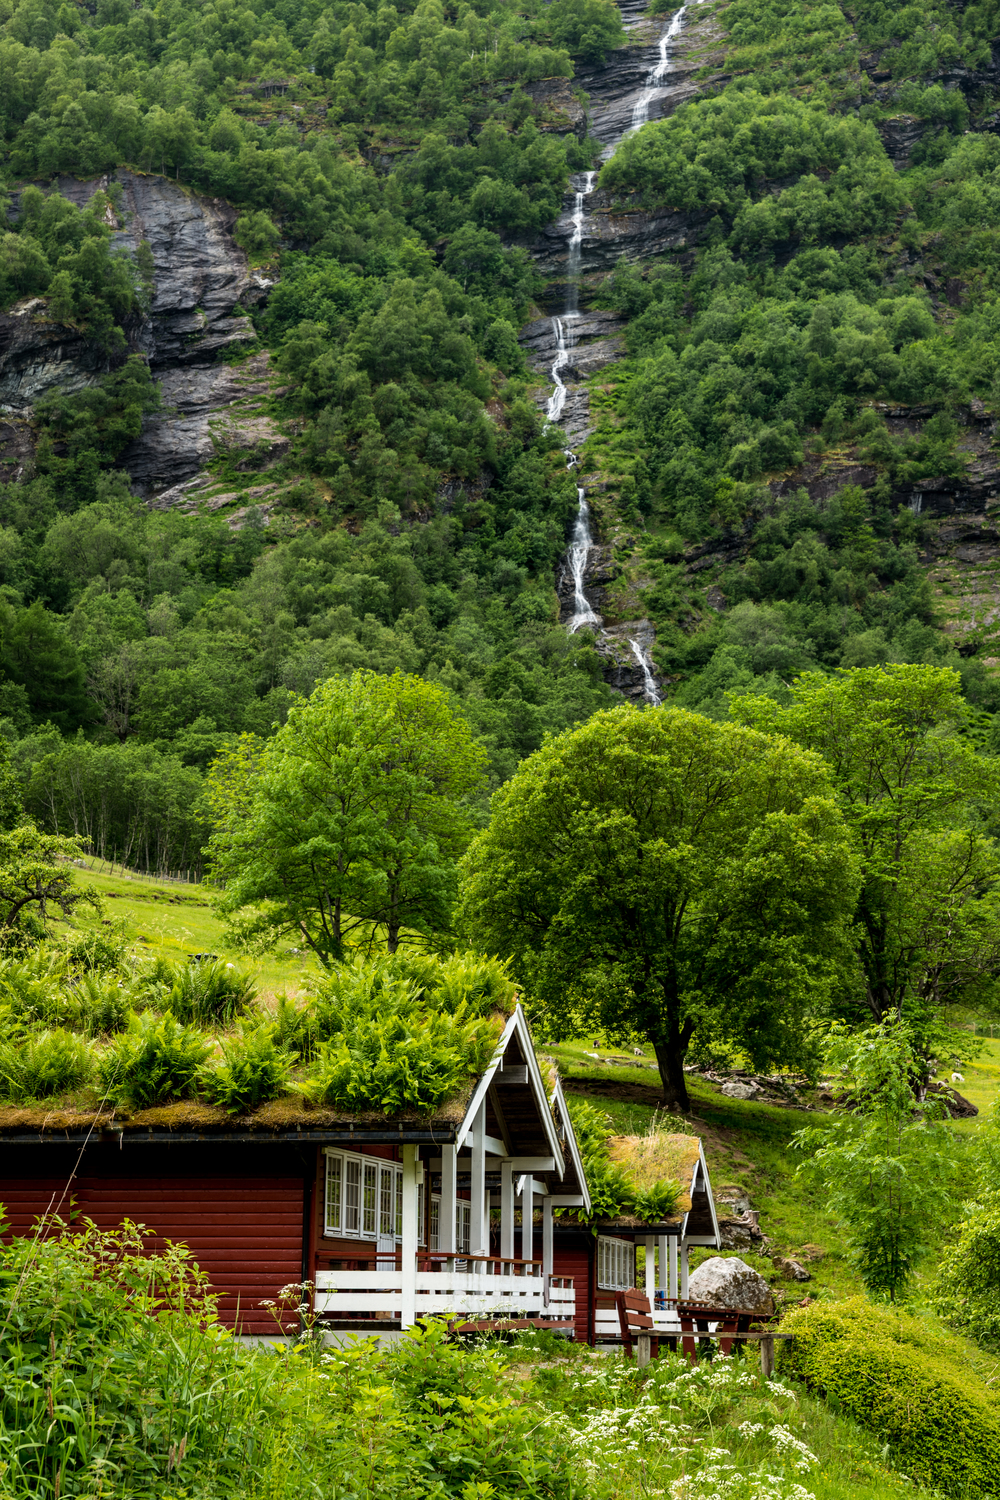 Sod roofs on homes in Geiranger Fjord, Norway